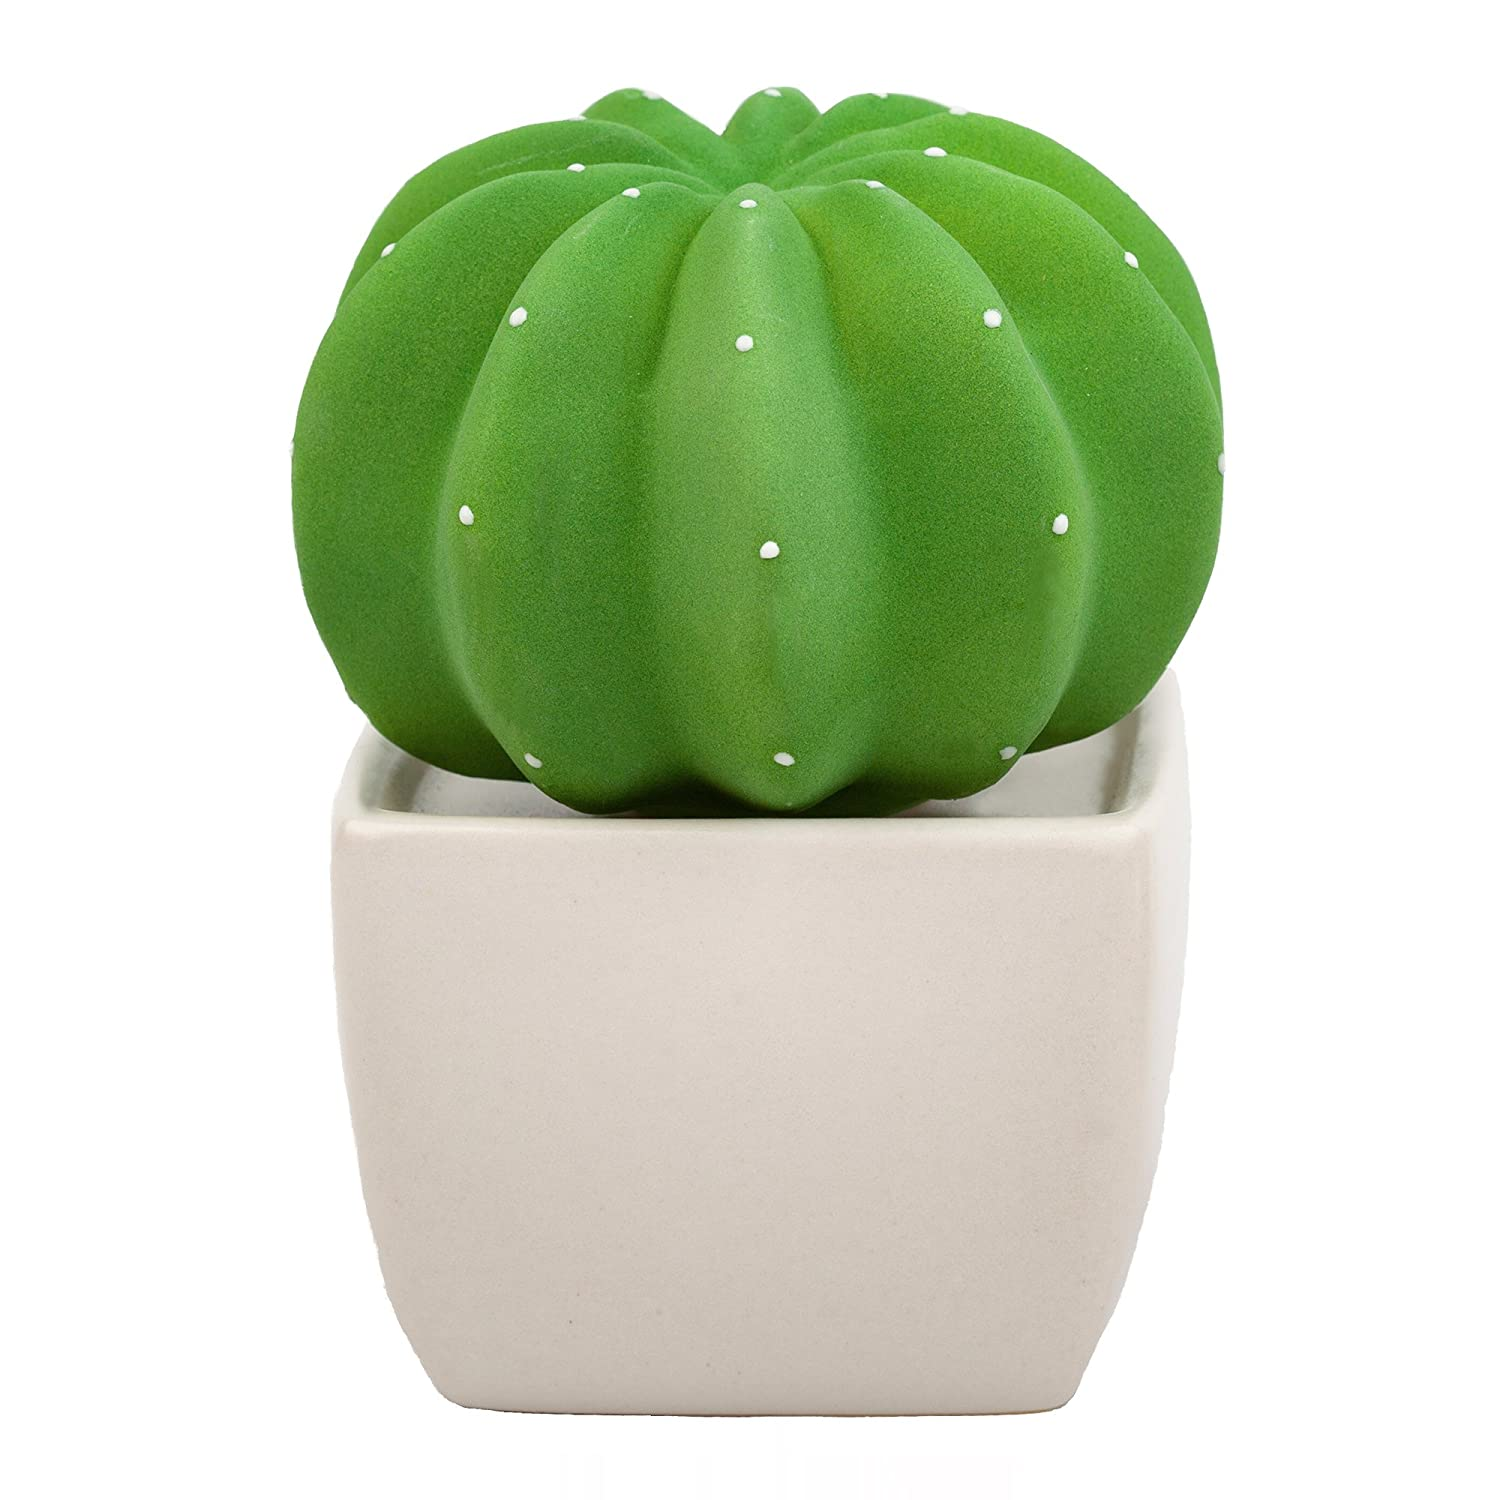 Lively Breeze Dotti Cactus, Non-Electric Ceramic Diffusers for Essential Oils and Aromatherapy Fragrance, White Ceramic Diffusers in Car or Desk Office Decor and Small Bathroom at Home, White Vase